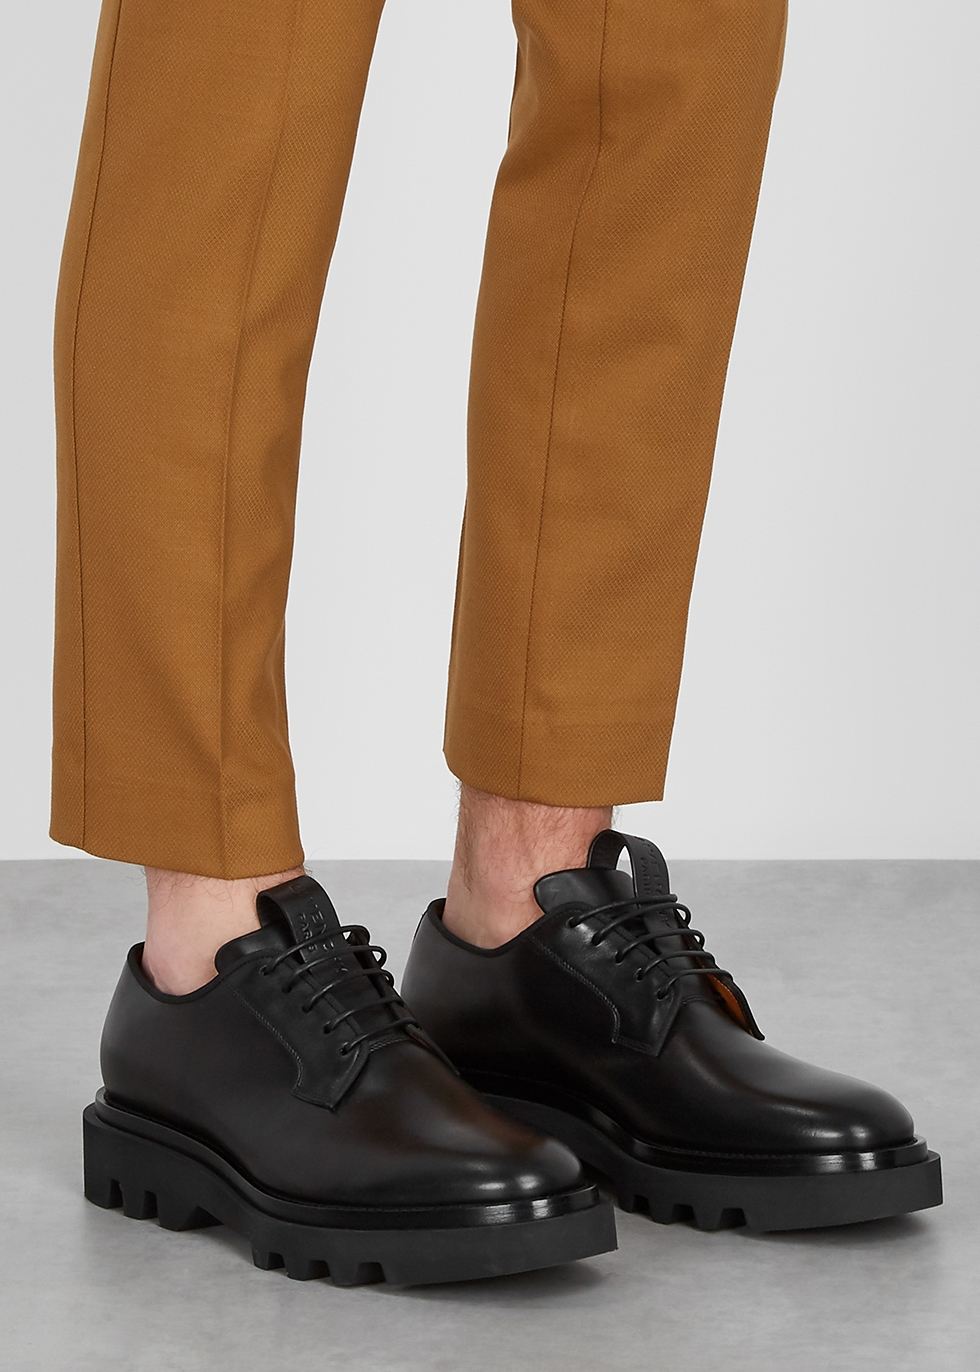 casual black leather derby shoes